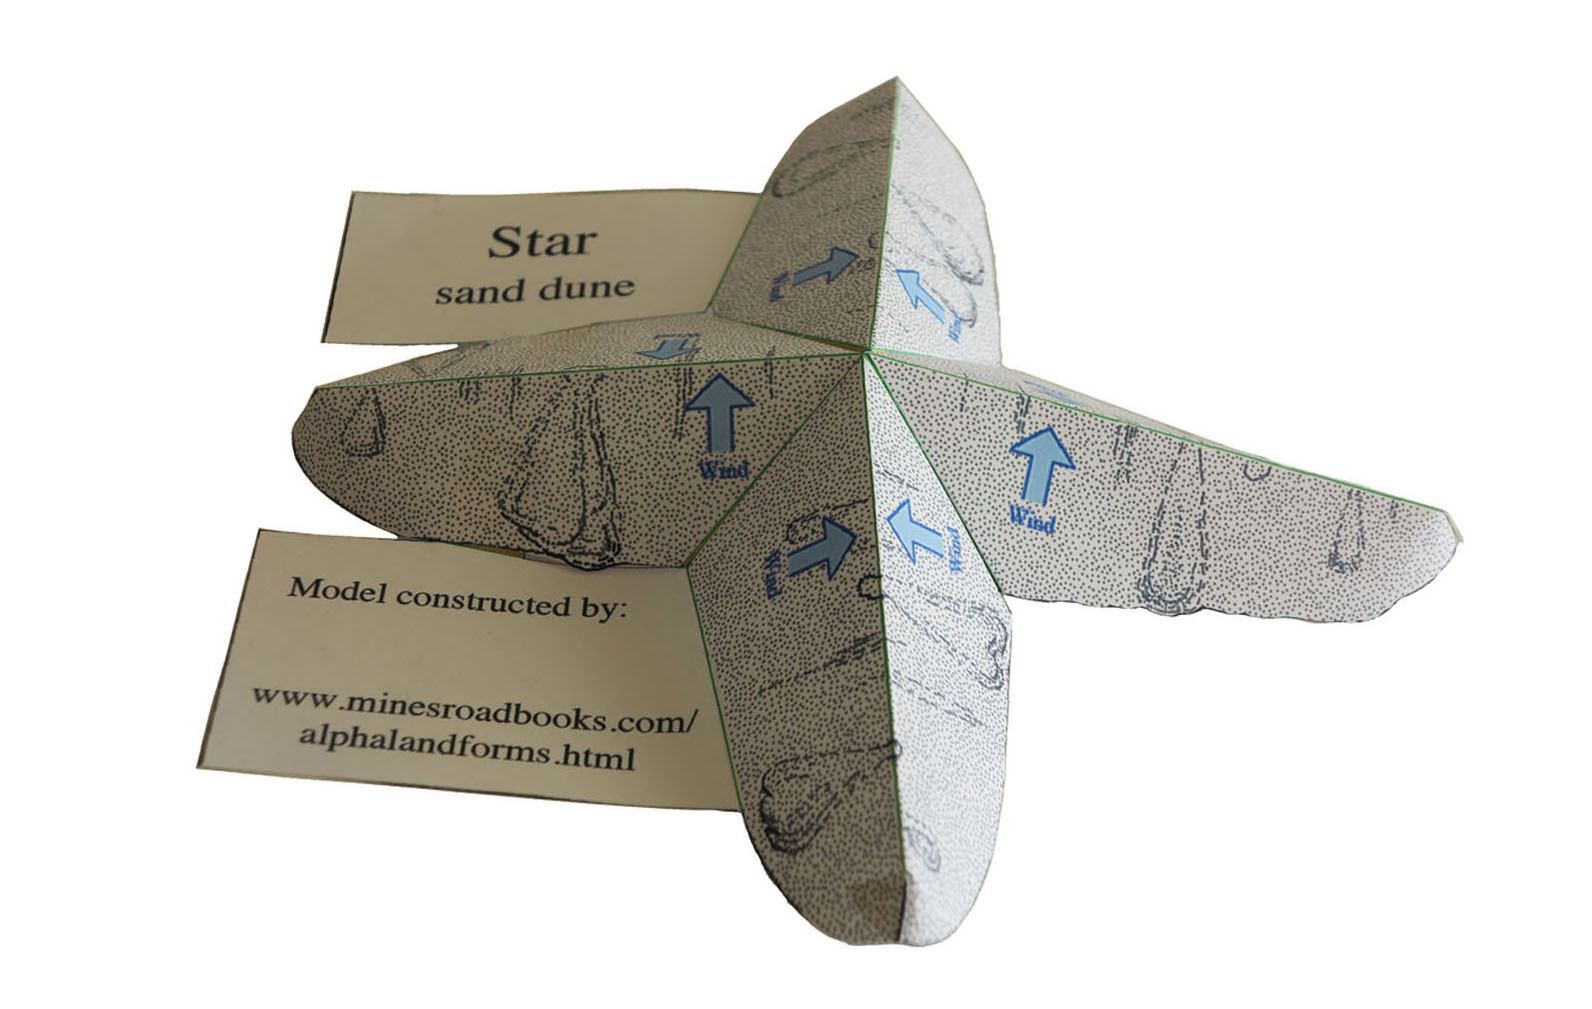 picture of star sand dune model